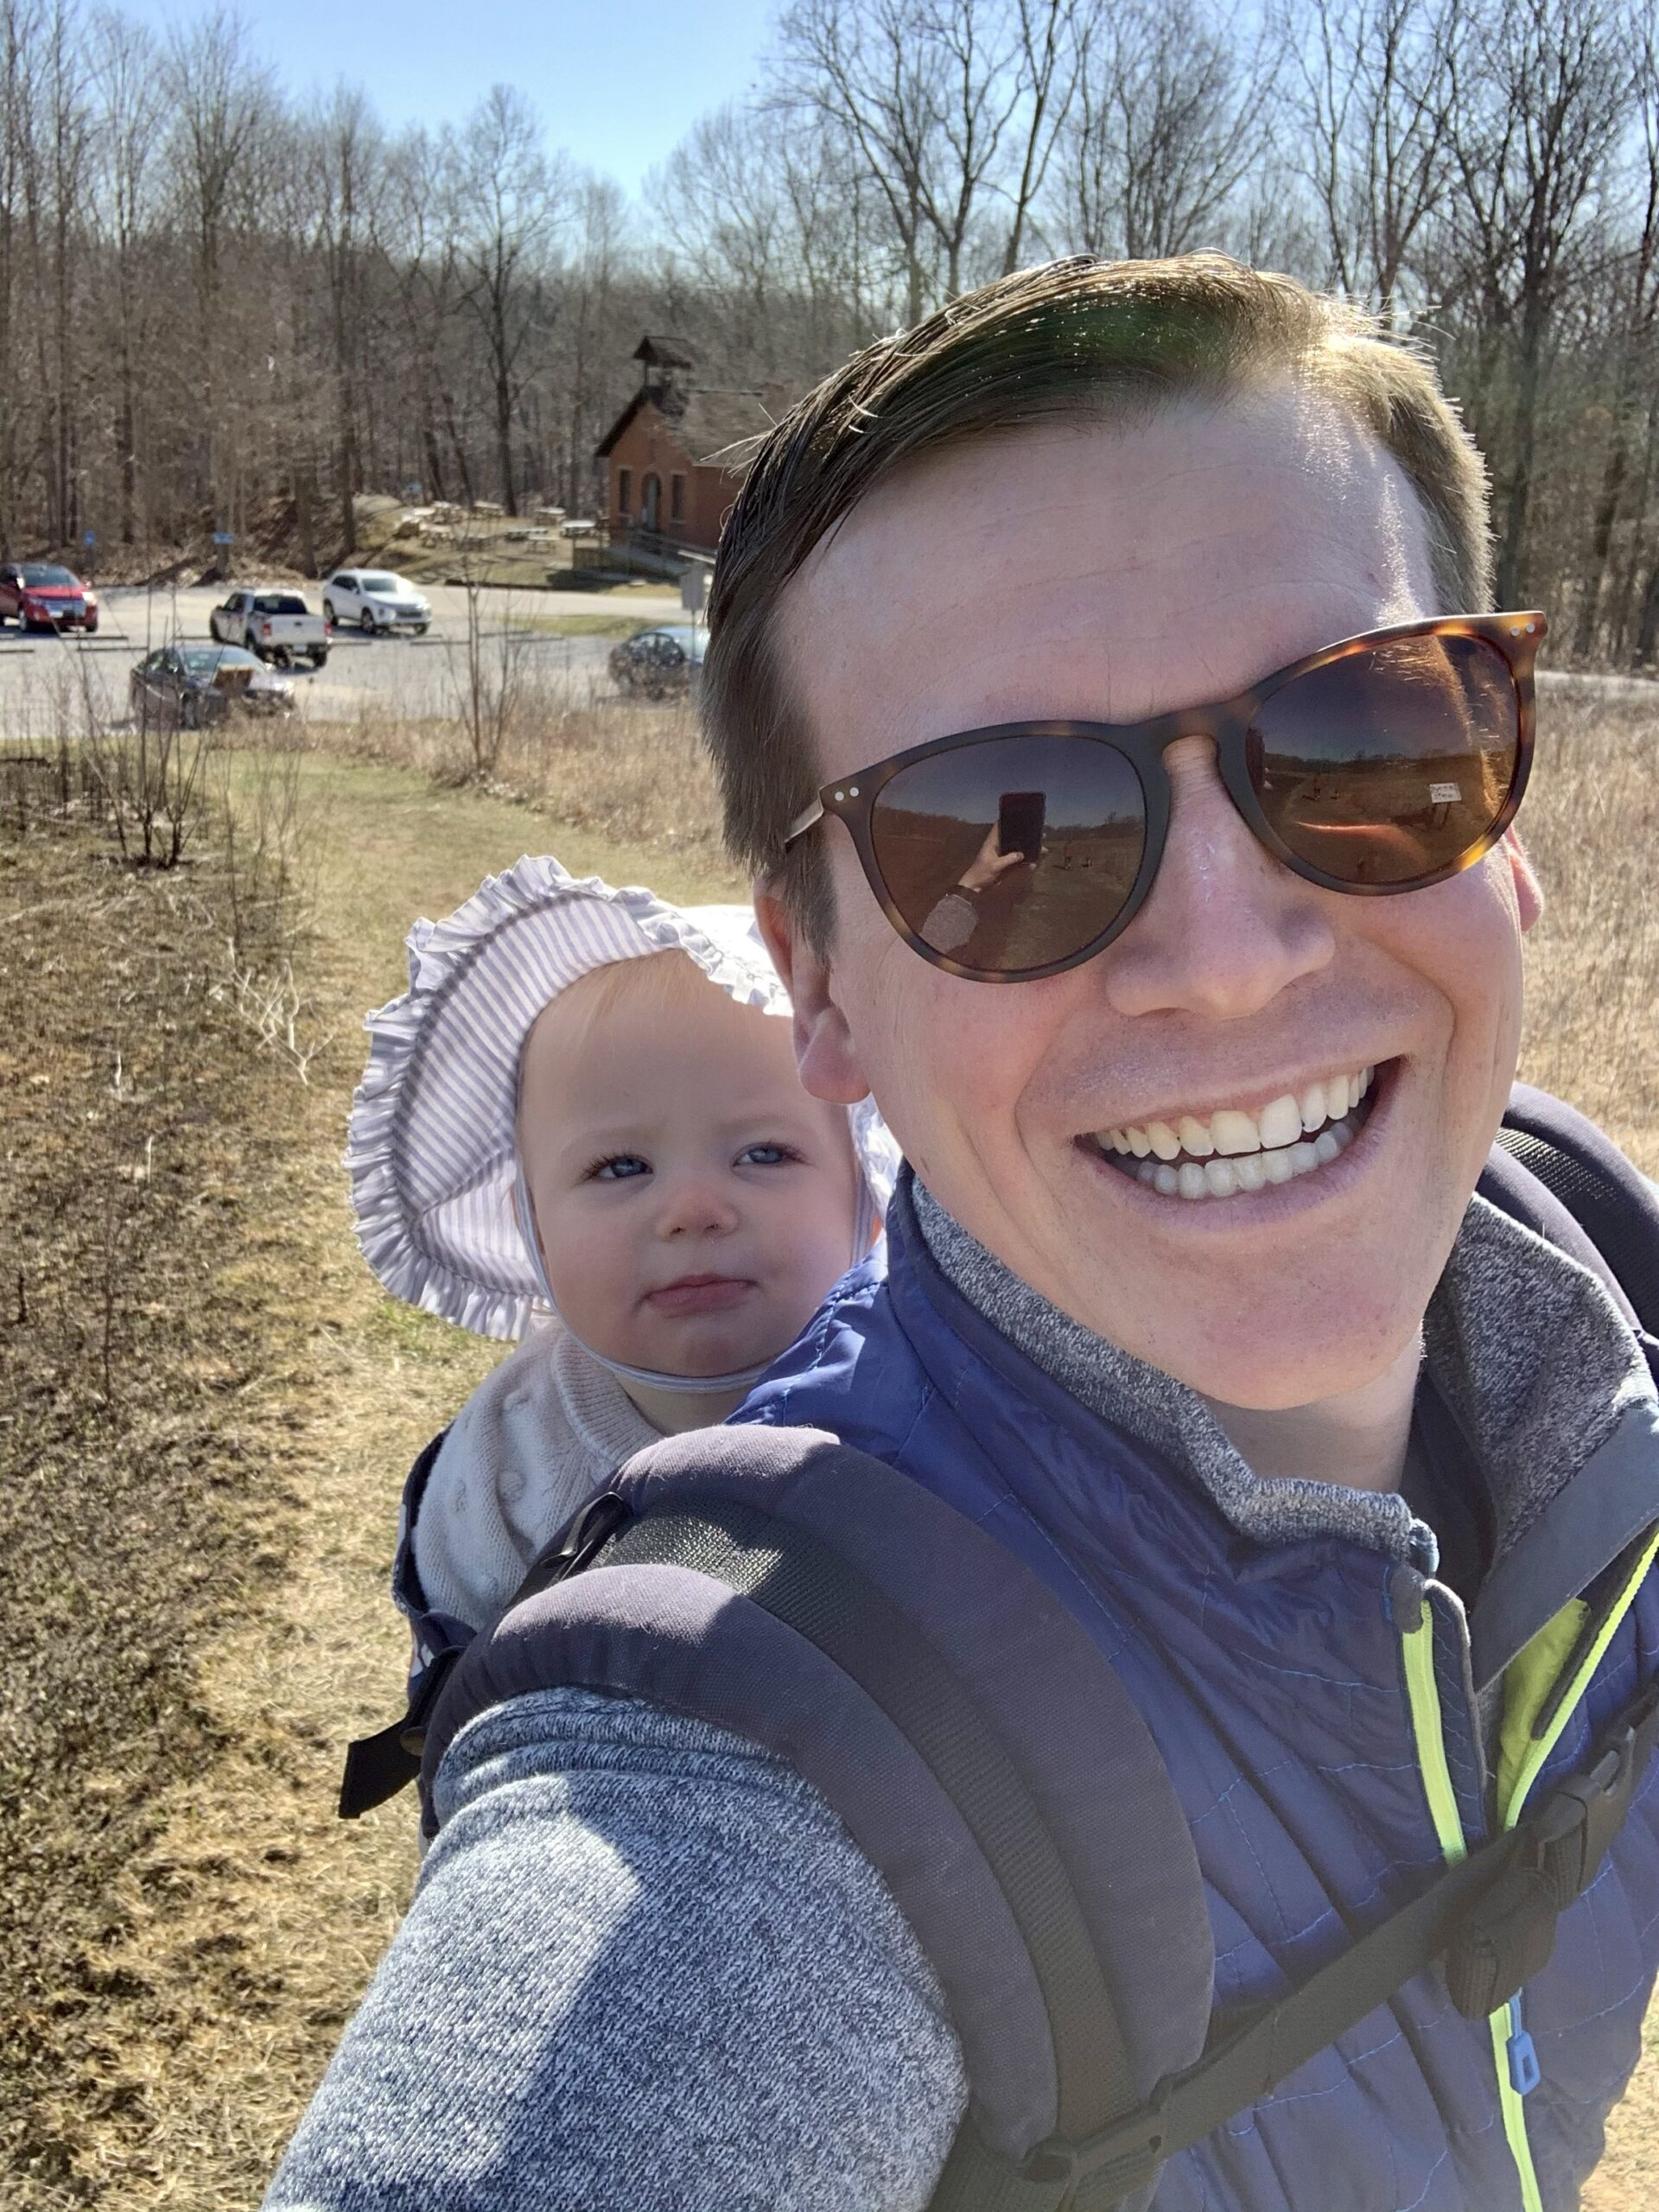 Selfie of me hiking with my daughter riding along in a baby carrier